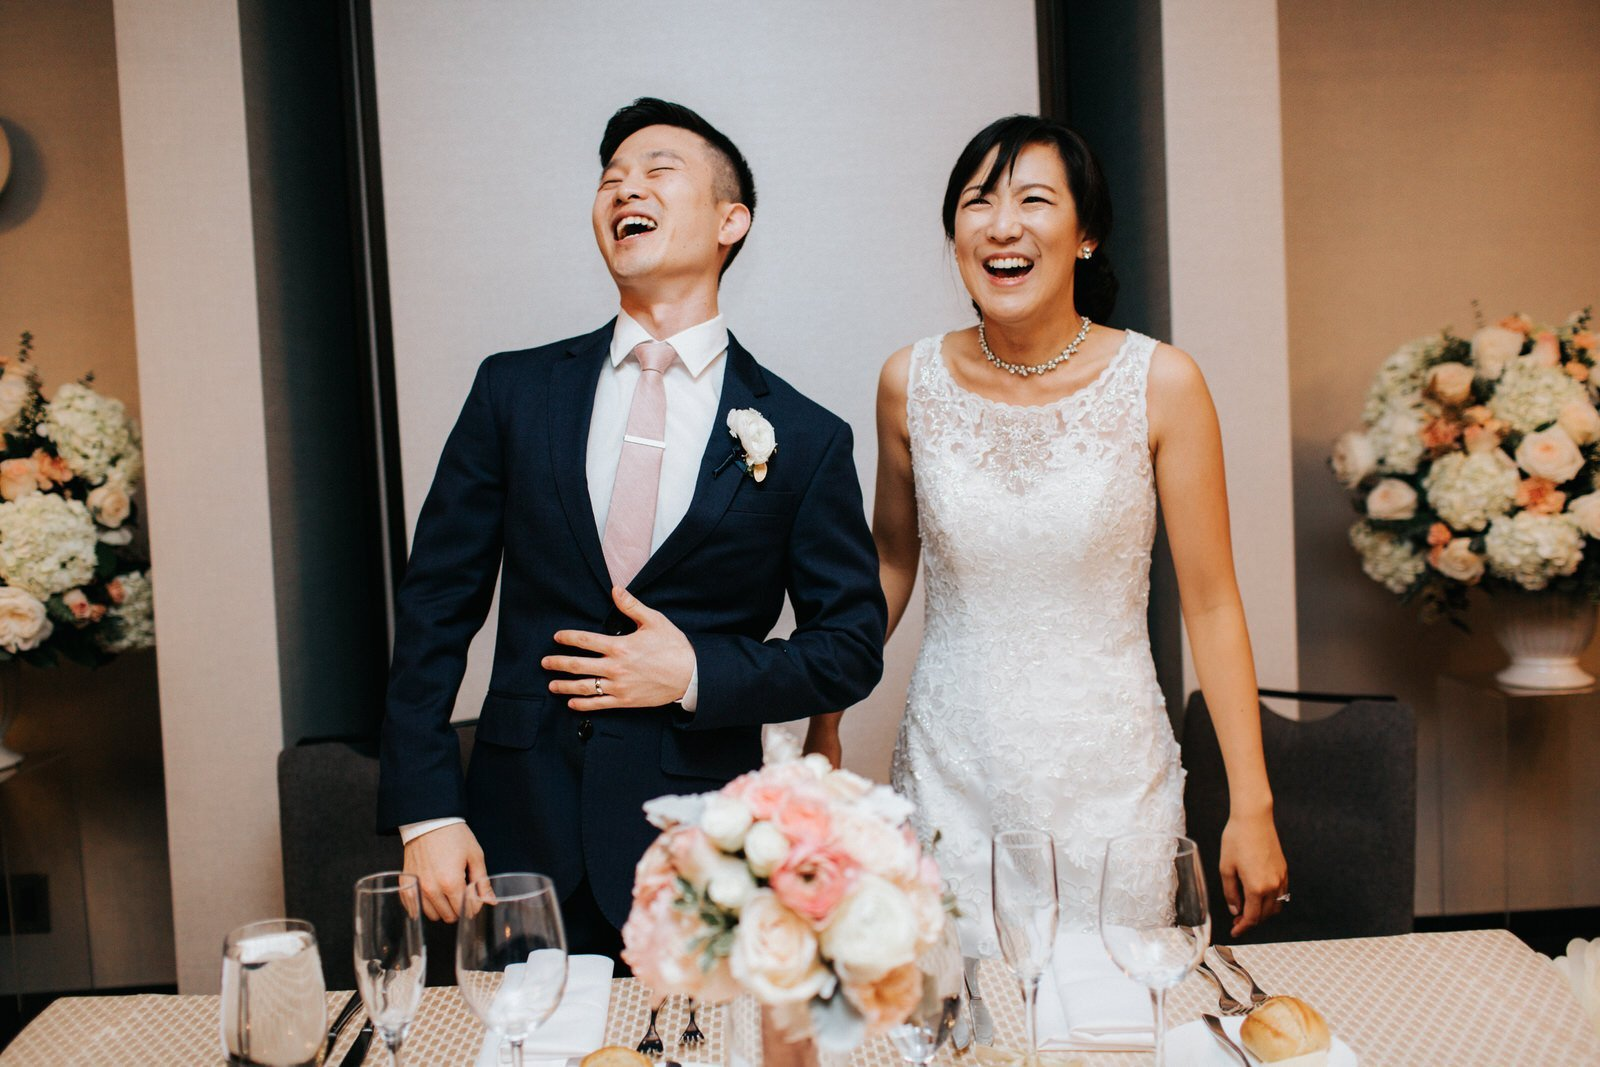 The couple laughs during their reception